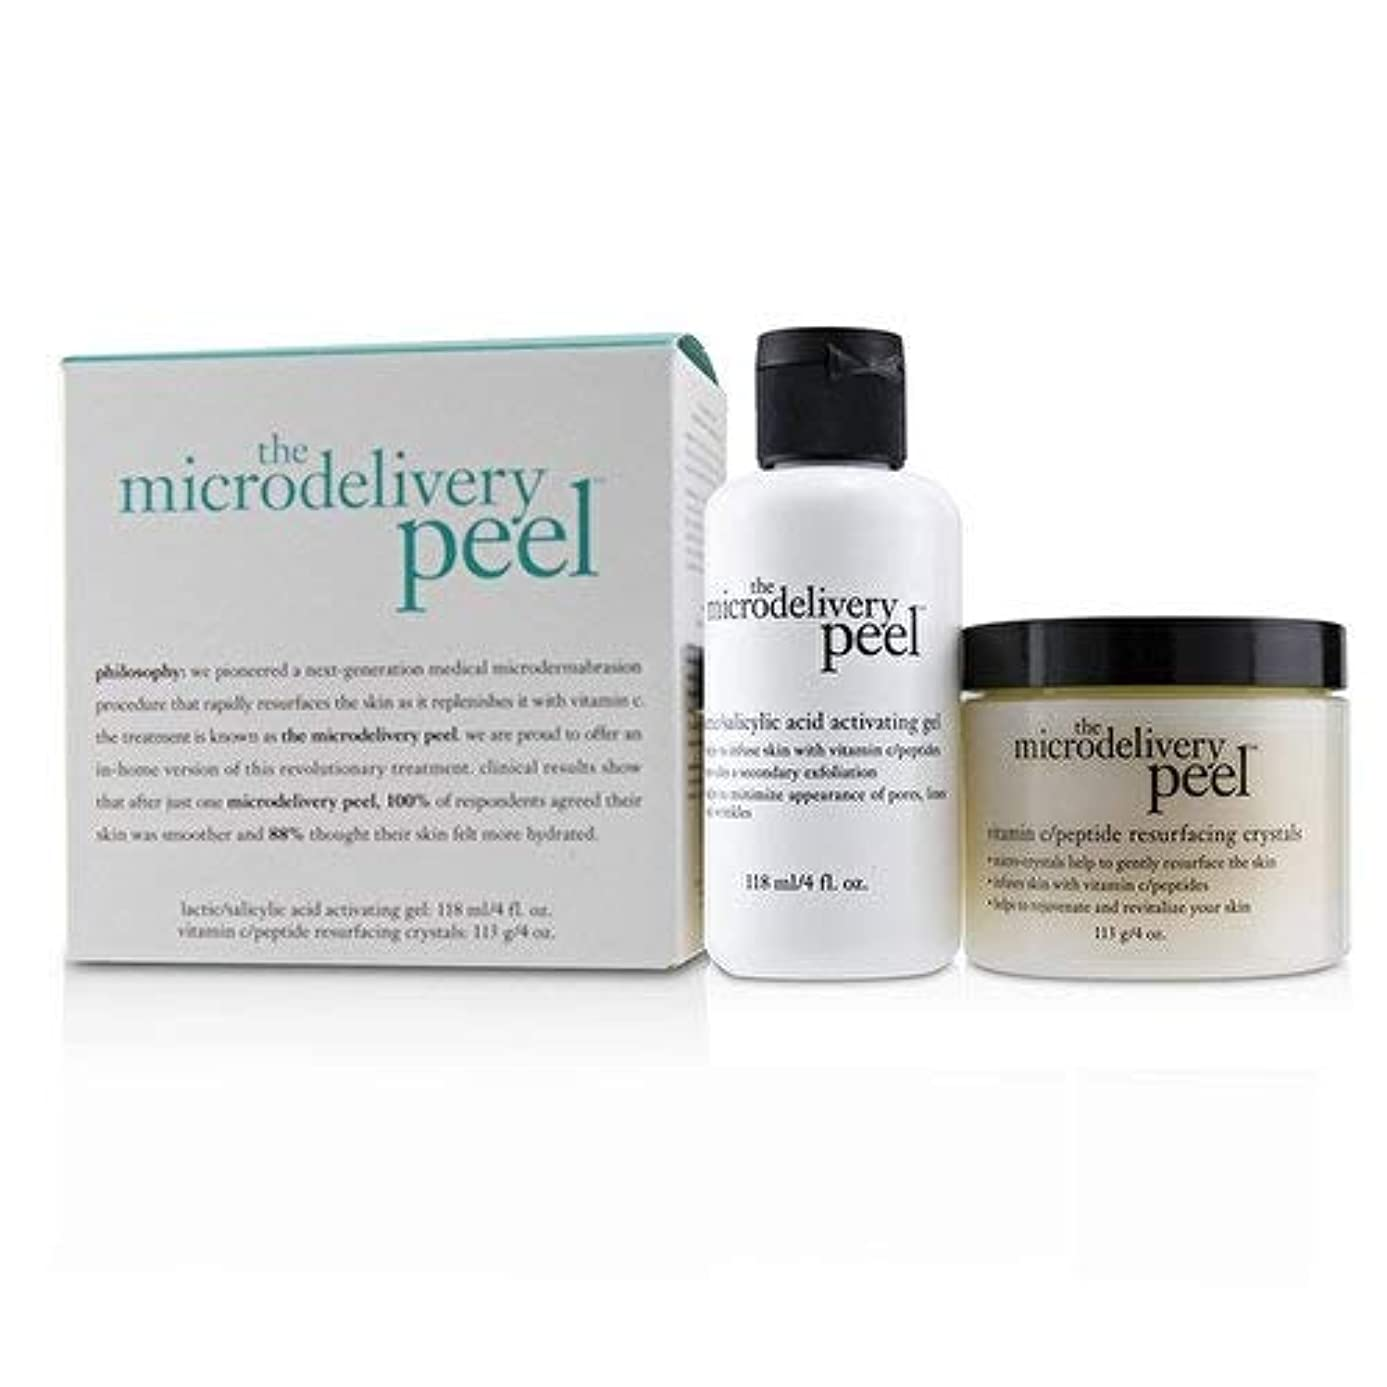 ガラス優しさ転用フィロソフィー The Microdelivery Peel: Lactic/Salicylic Acid Activating Gel 118ml + Vitamin C/Peptide Resurfacing Crystals...